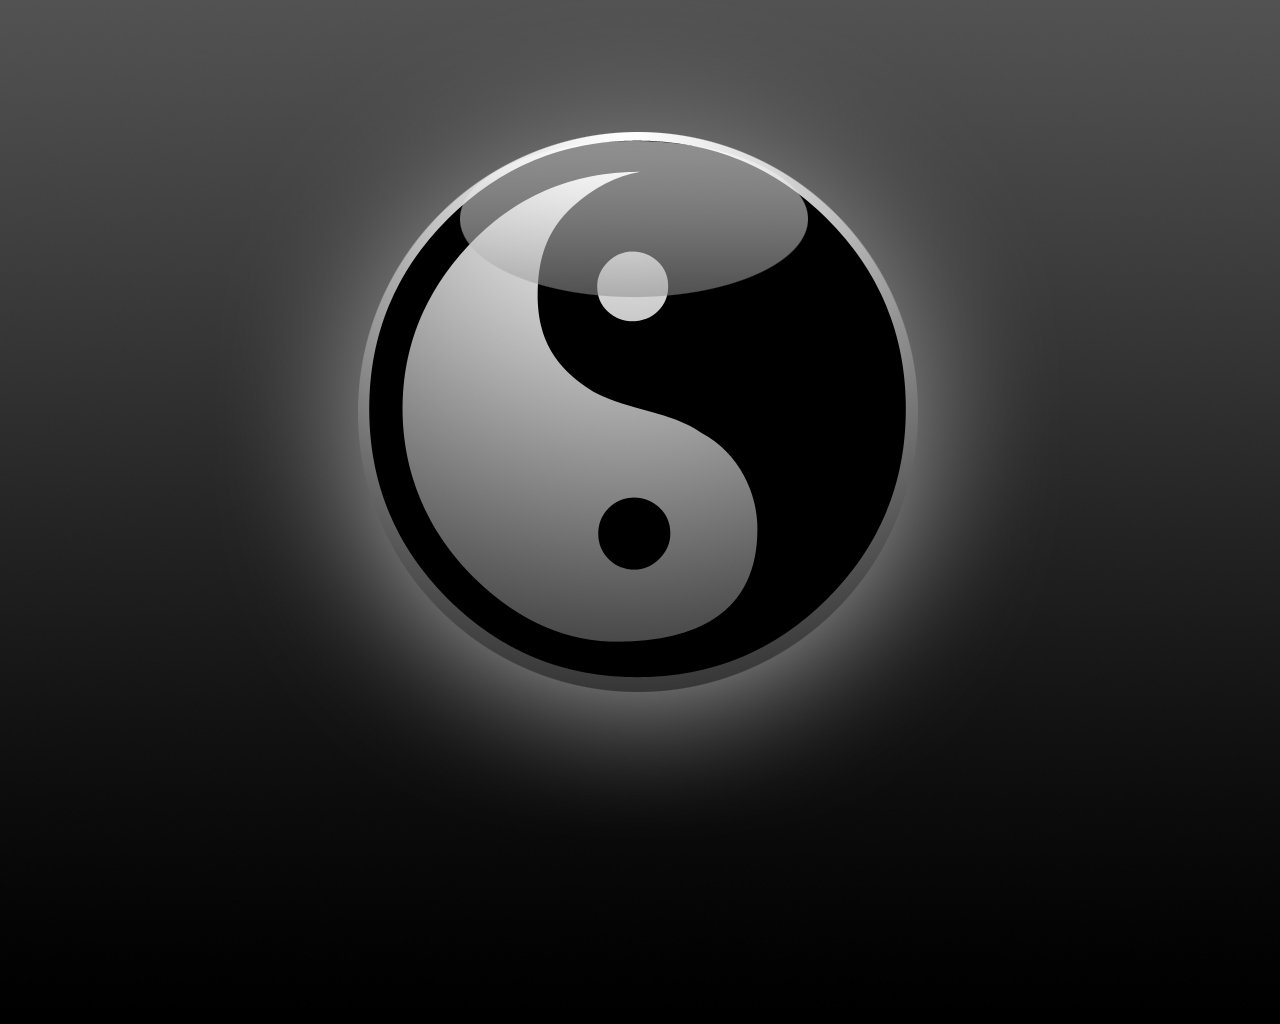 10 latest yin yang hd wallpaper full hd 1080p for pc desktop 2018